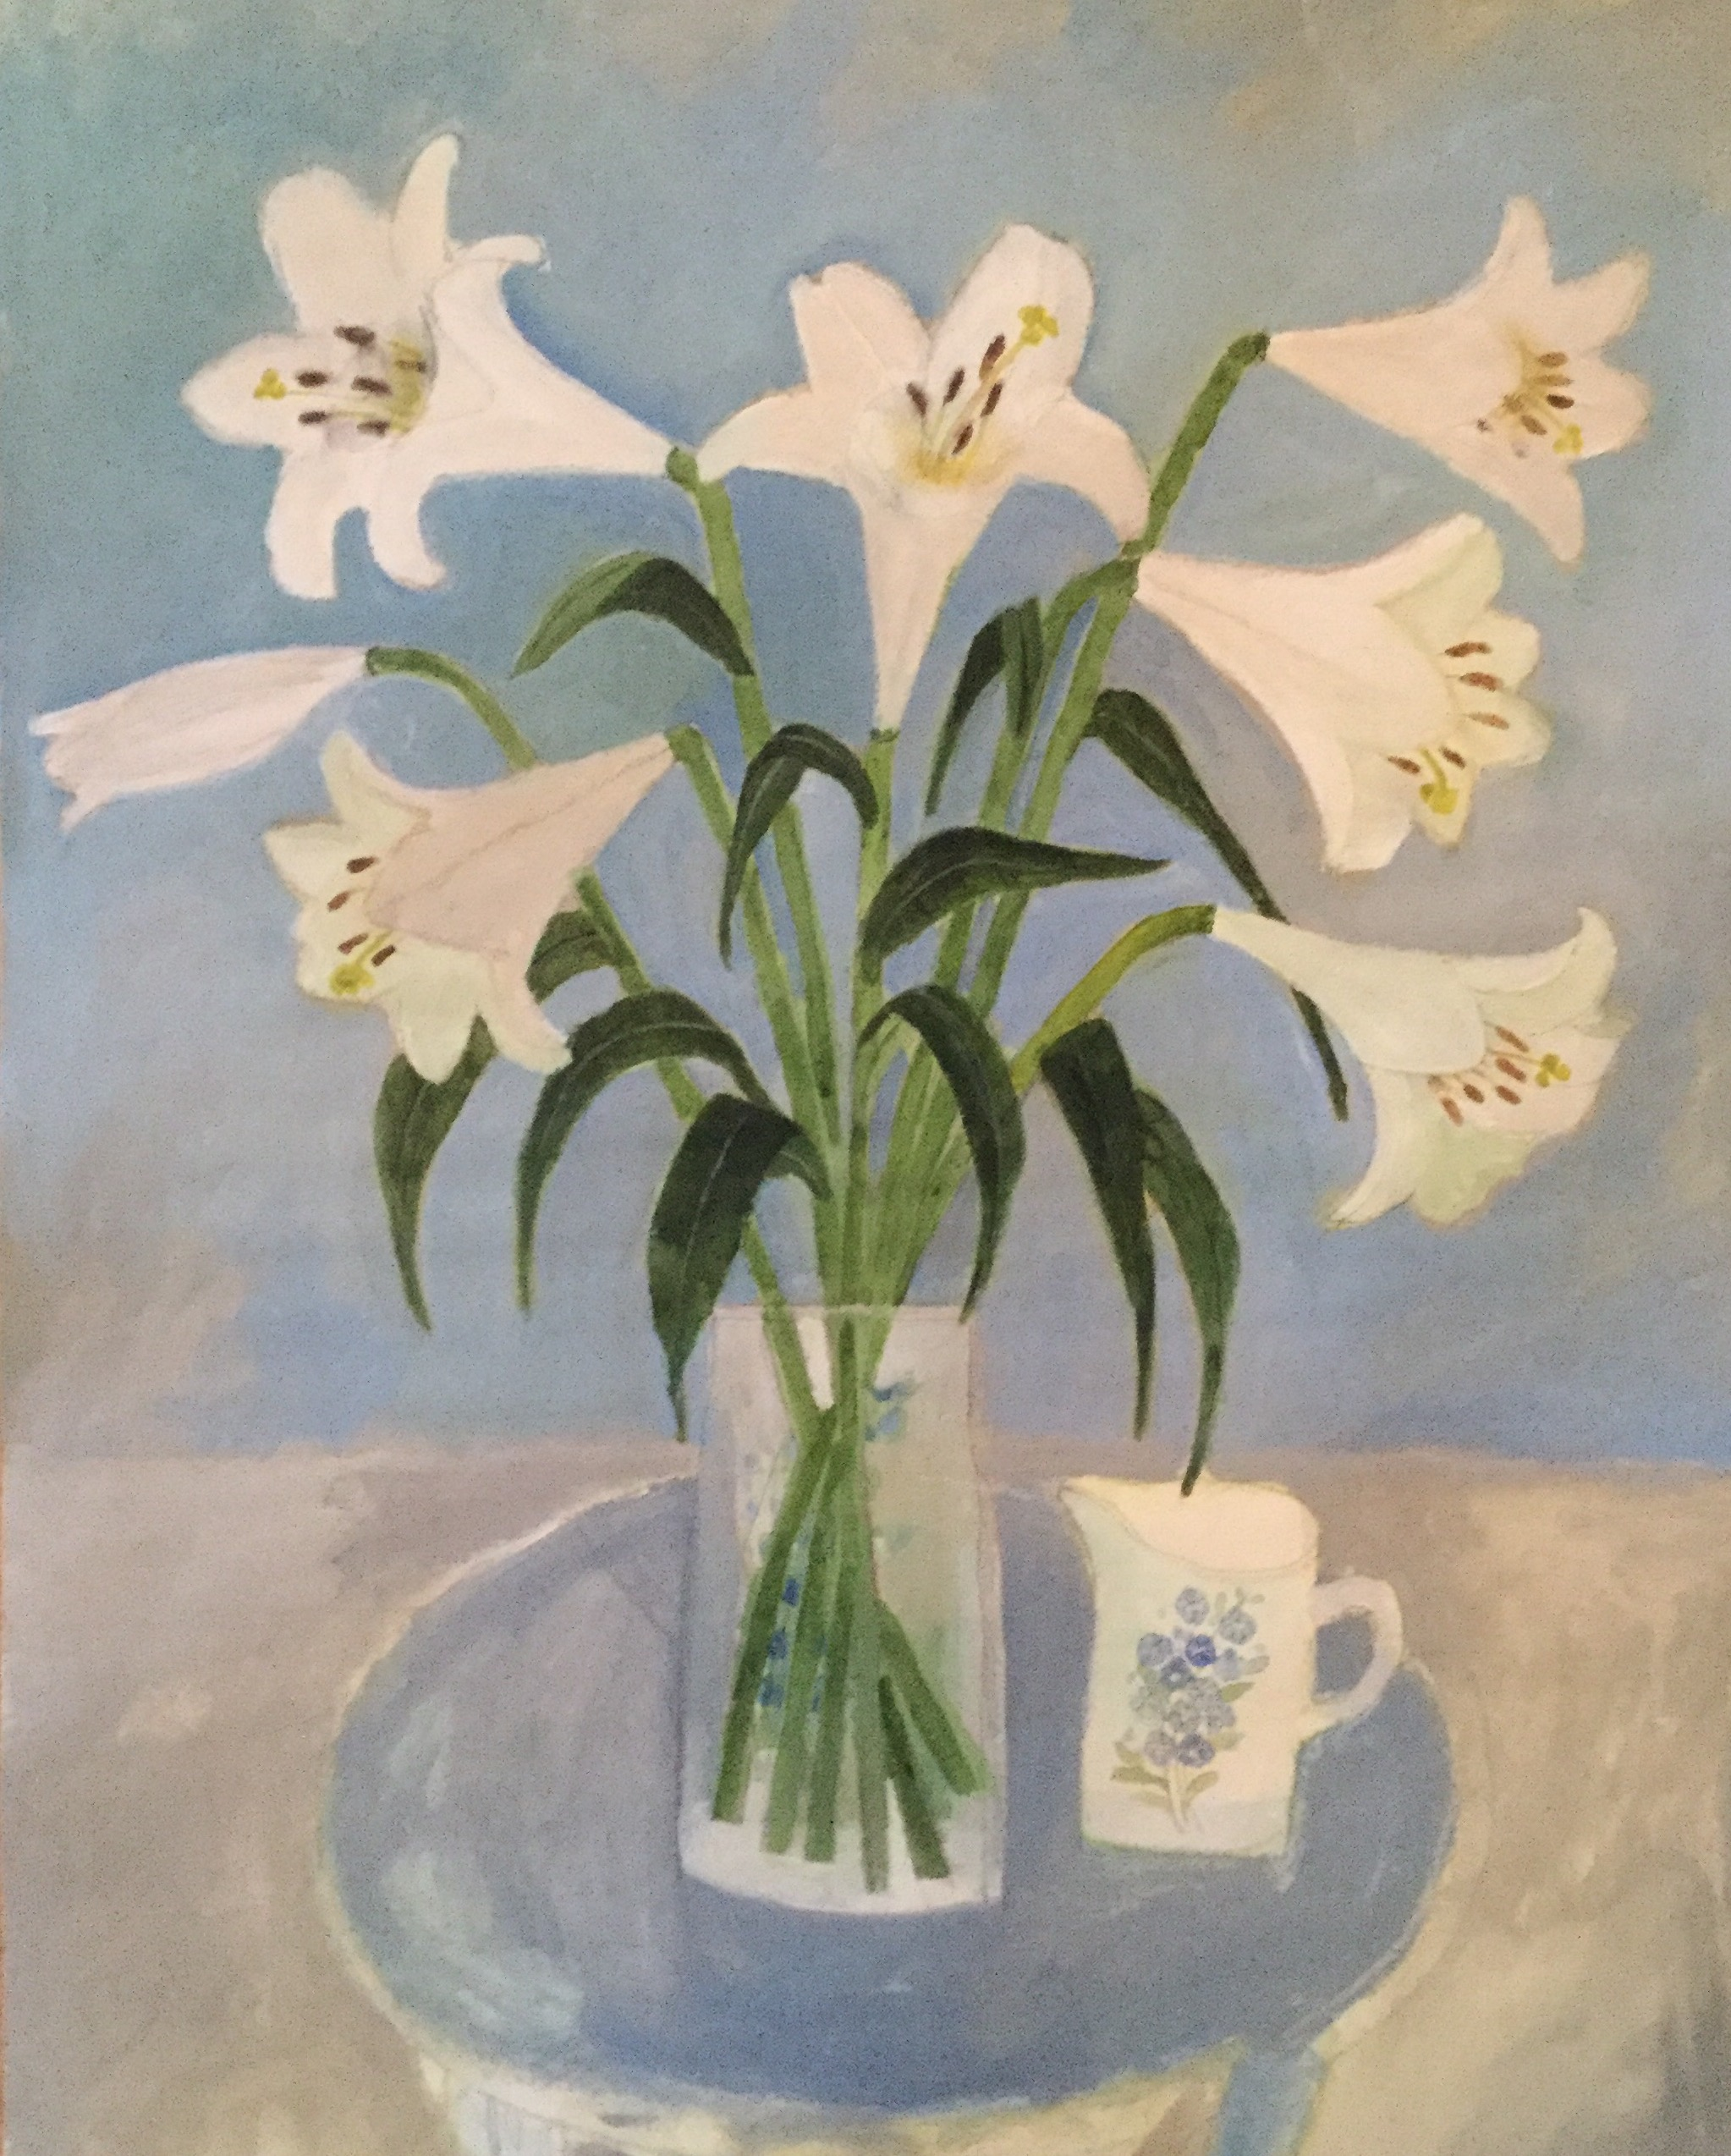 Lillies on a blue table